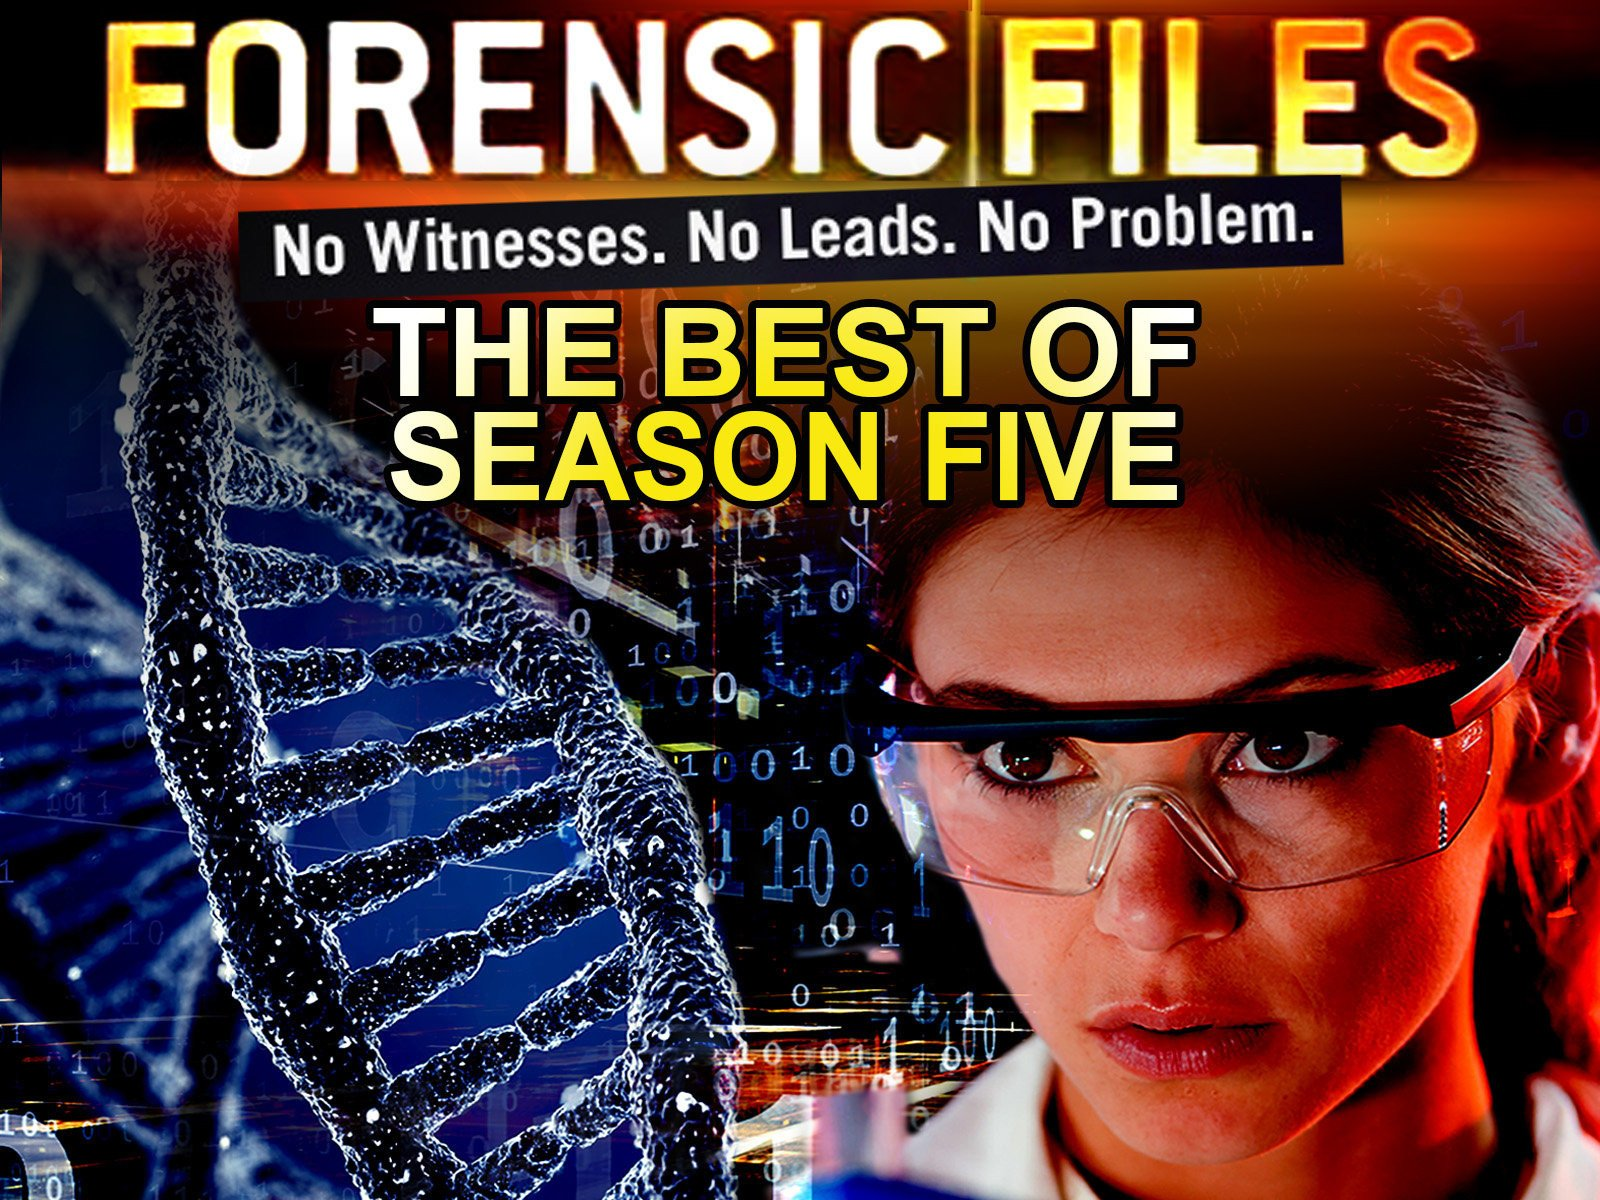 Image result for forensic files; forensic files; lessons learned from forensic files; what forensic files taught me